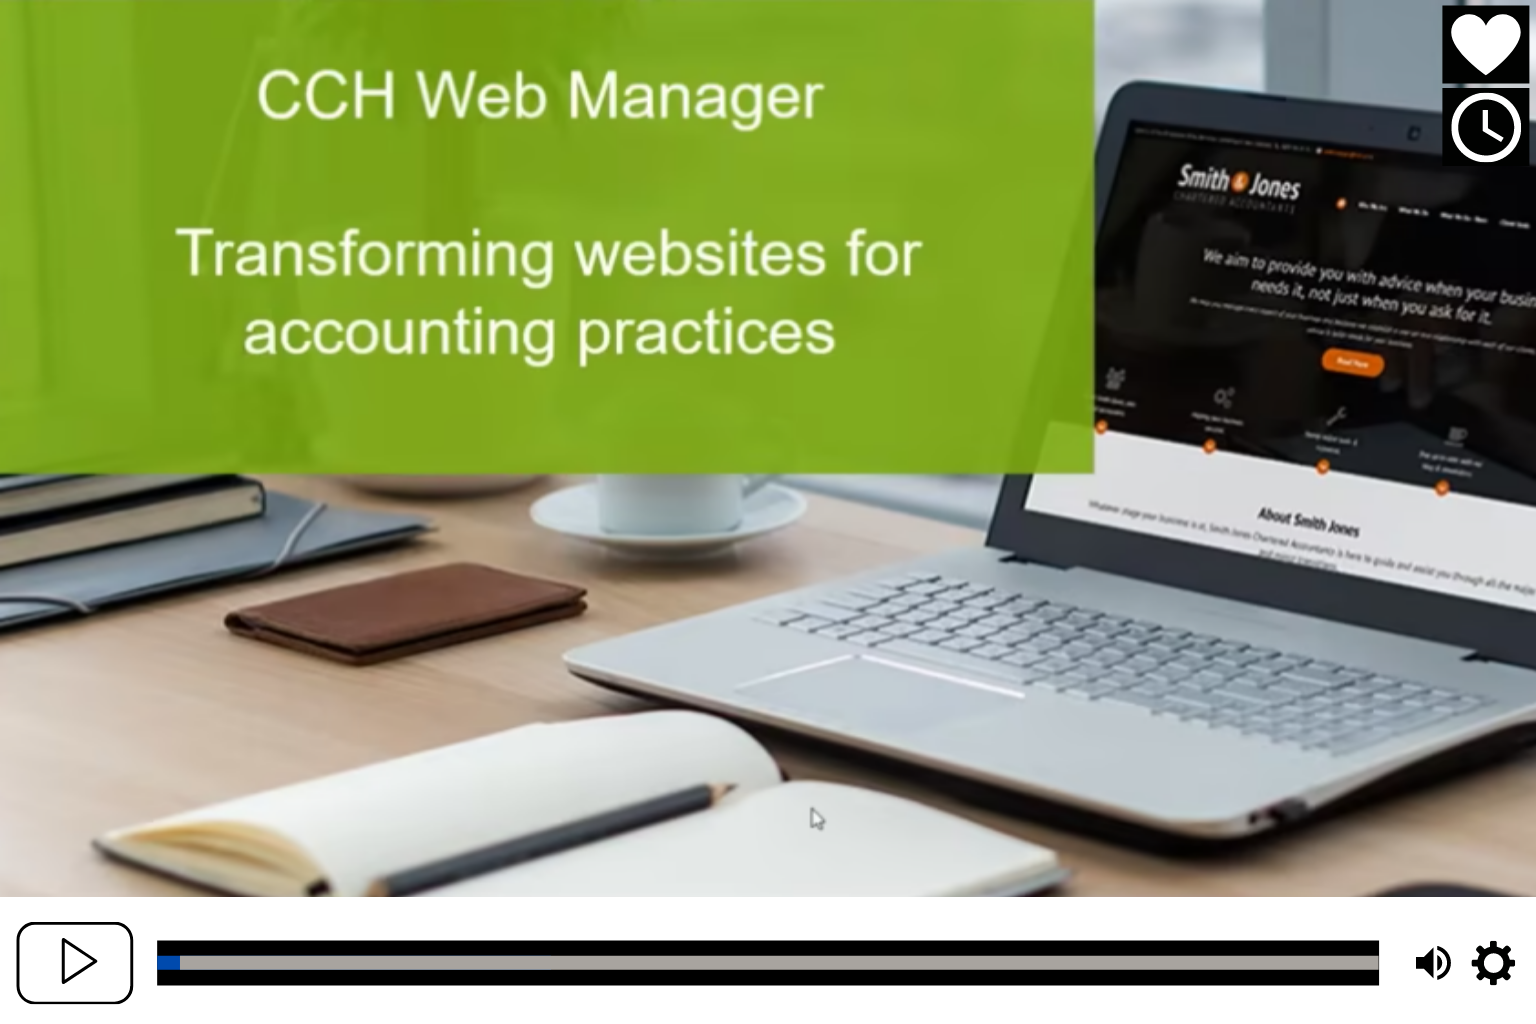 CCH Web Manager Video Oct 2021